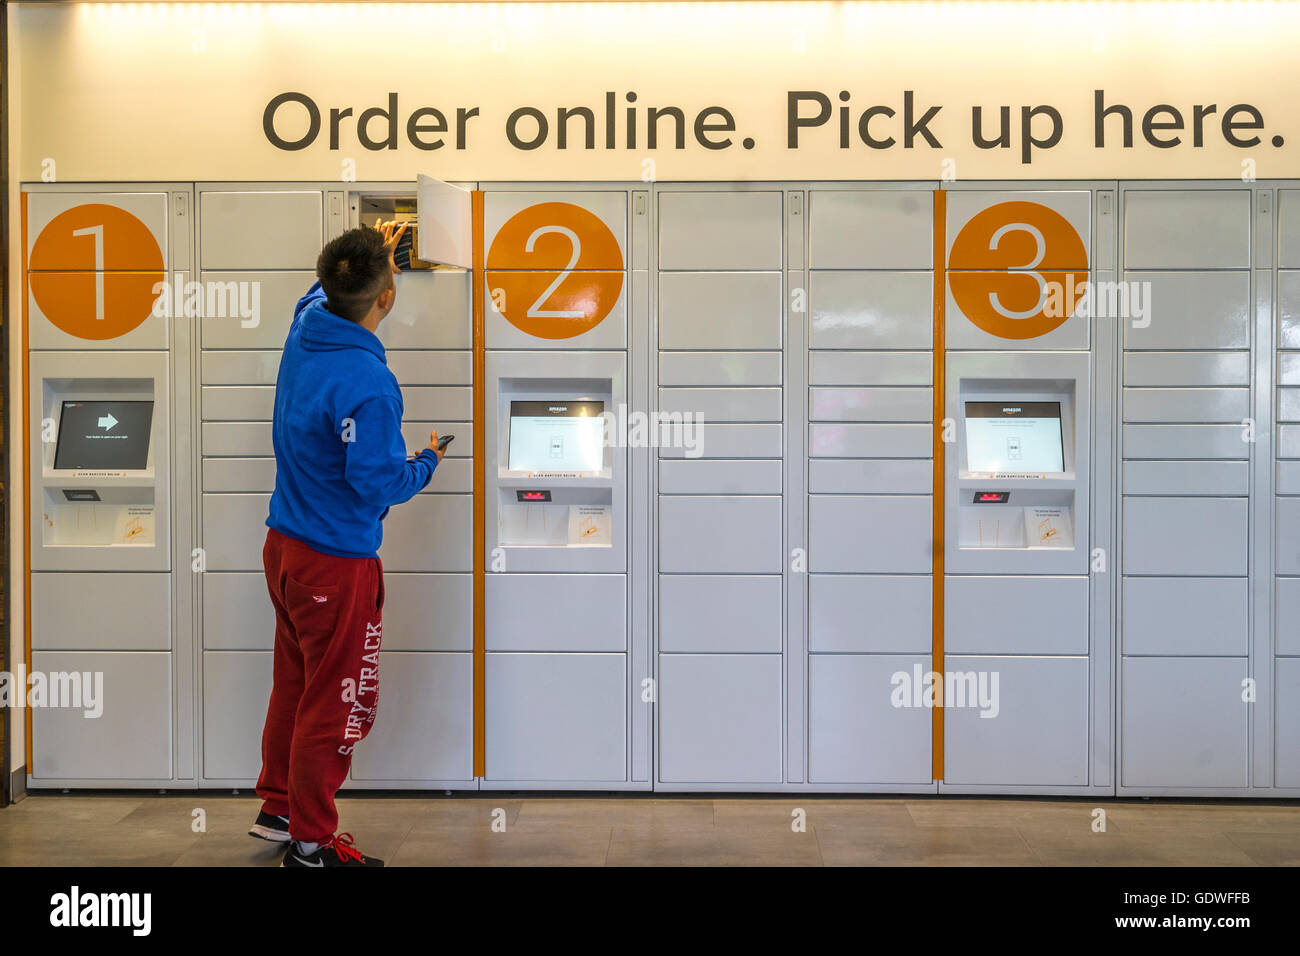 Man reaching into an ecommerce locker while holding his smarthpone as he picks up a package he ordered online - Stock Image